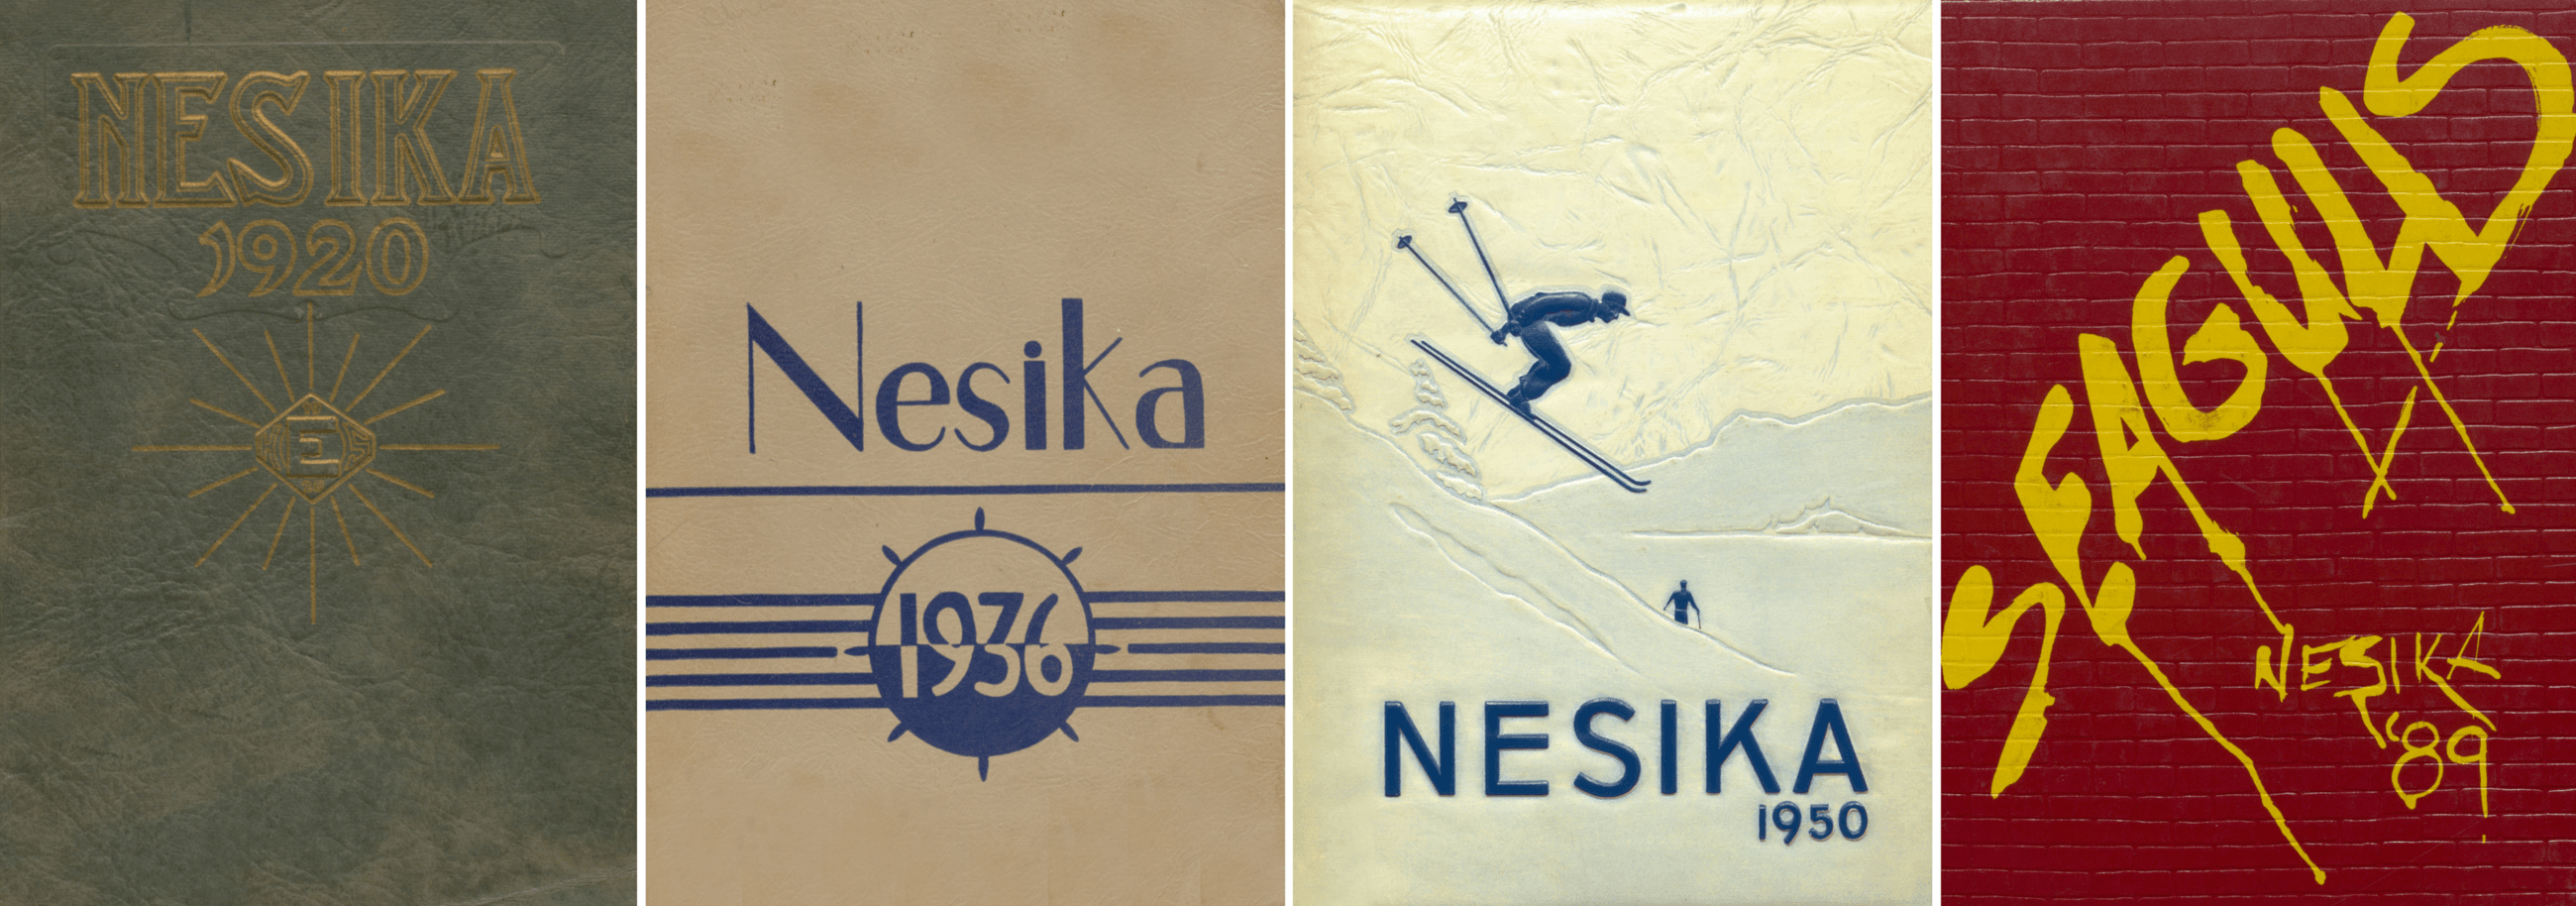 covers of Nesika yearbooks from 1920, 1936, 1950, and 1989